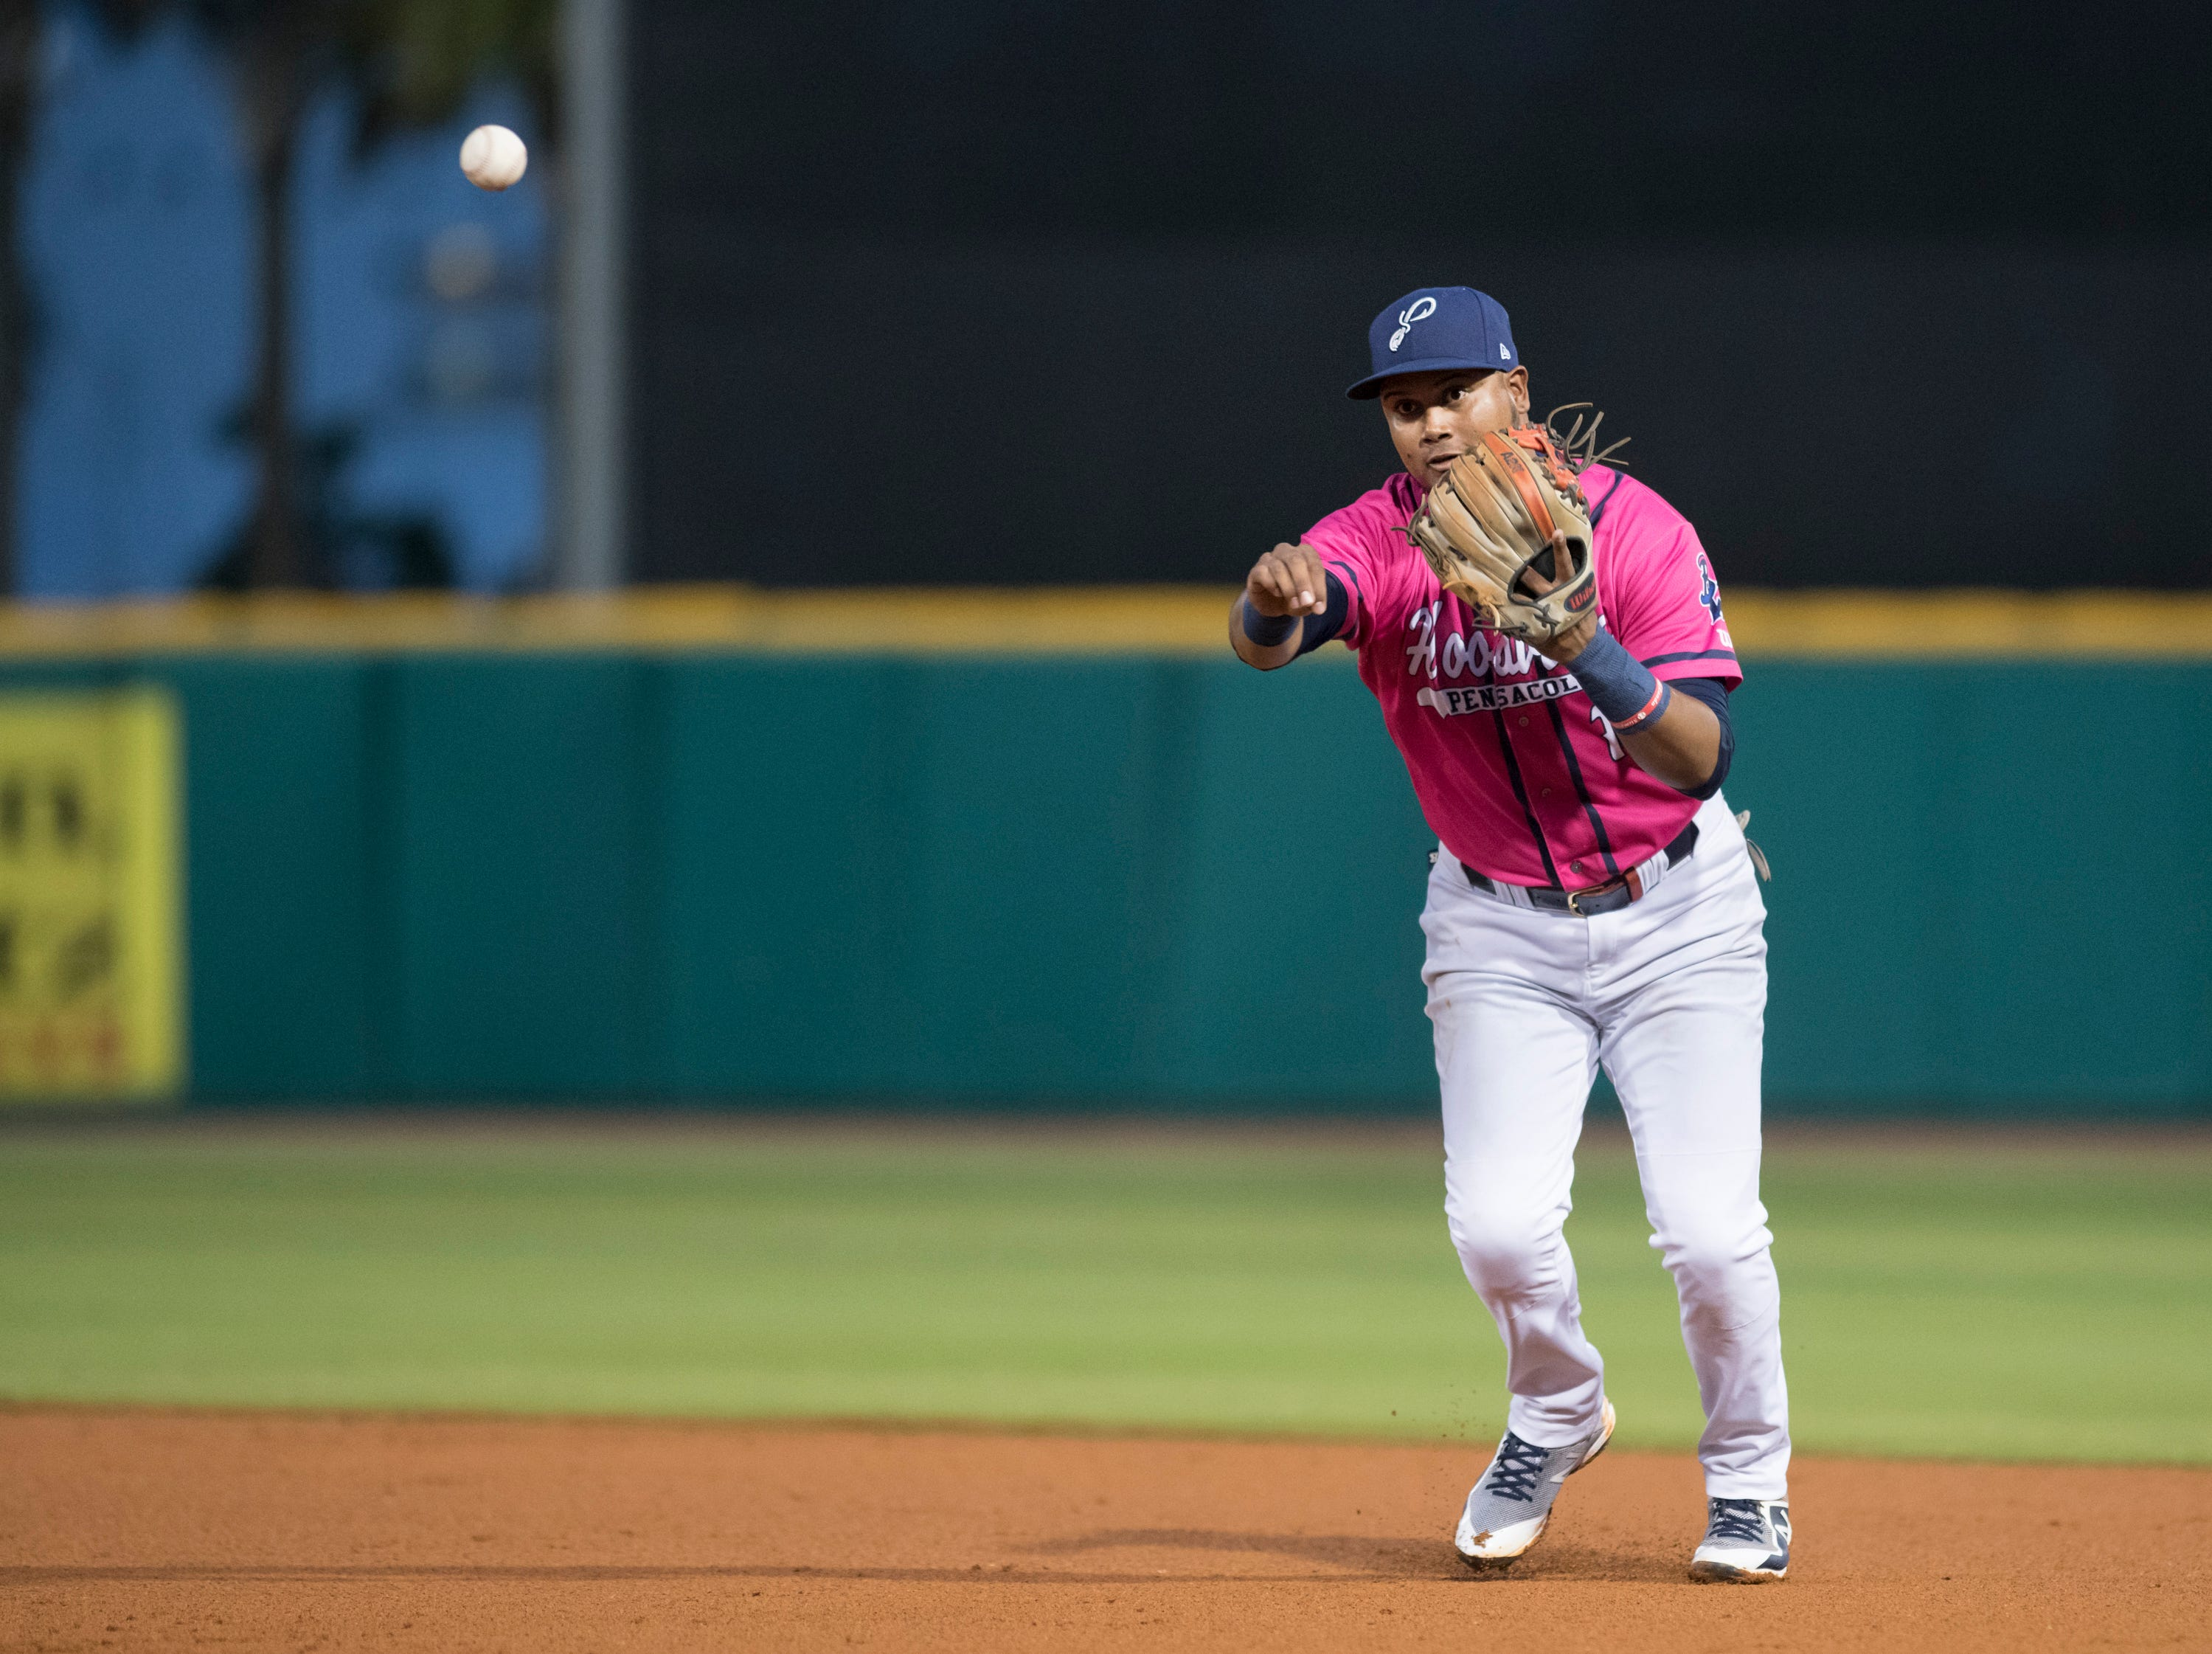 Second baseman Luis Arraez (1) tosses to first for an out during the Jacksonville Jumbo Shrimp vs Pensacola Blue Wahoos baseball game in Pensacola on Friday, April 12, 2019.